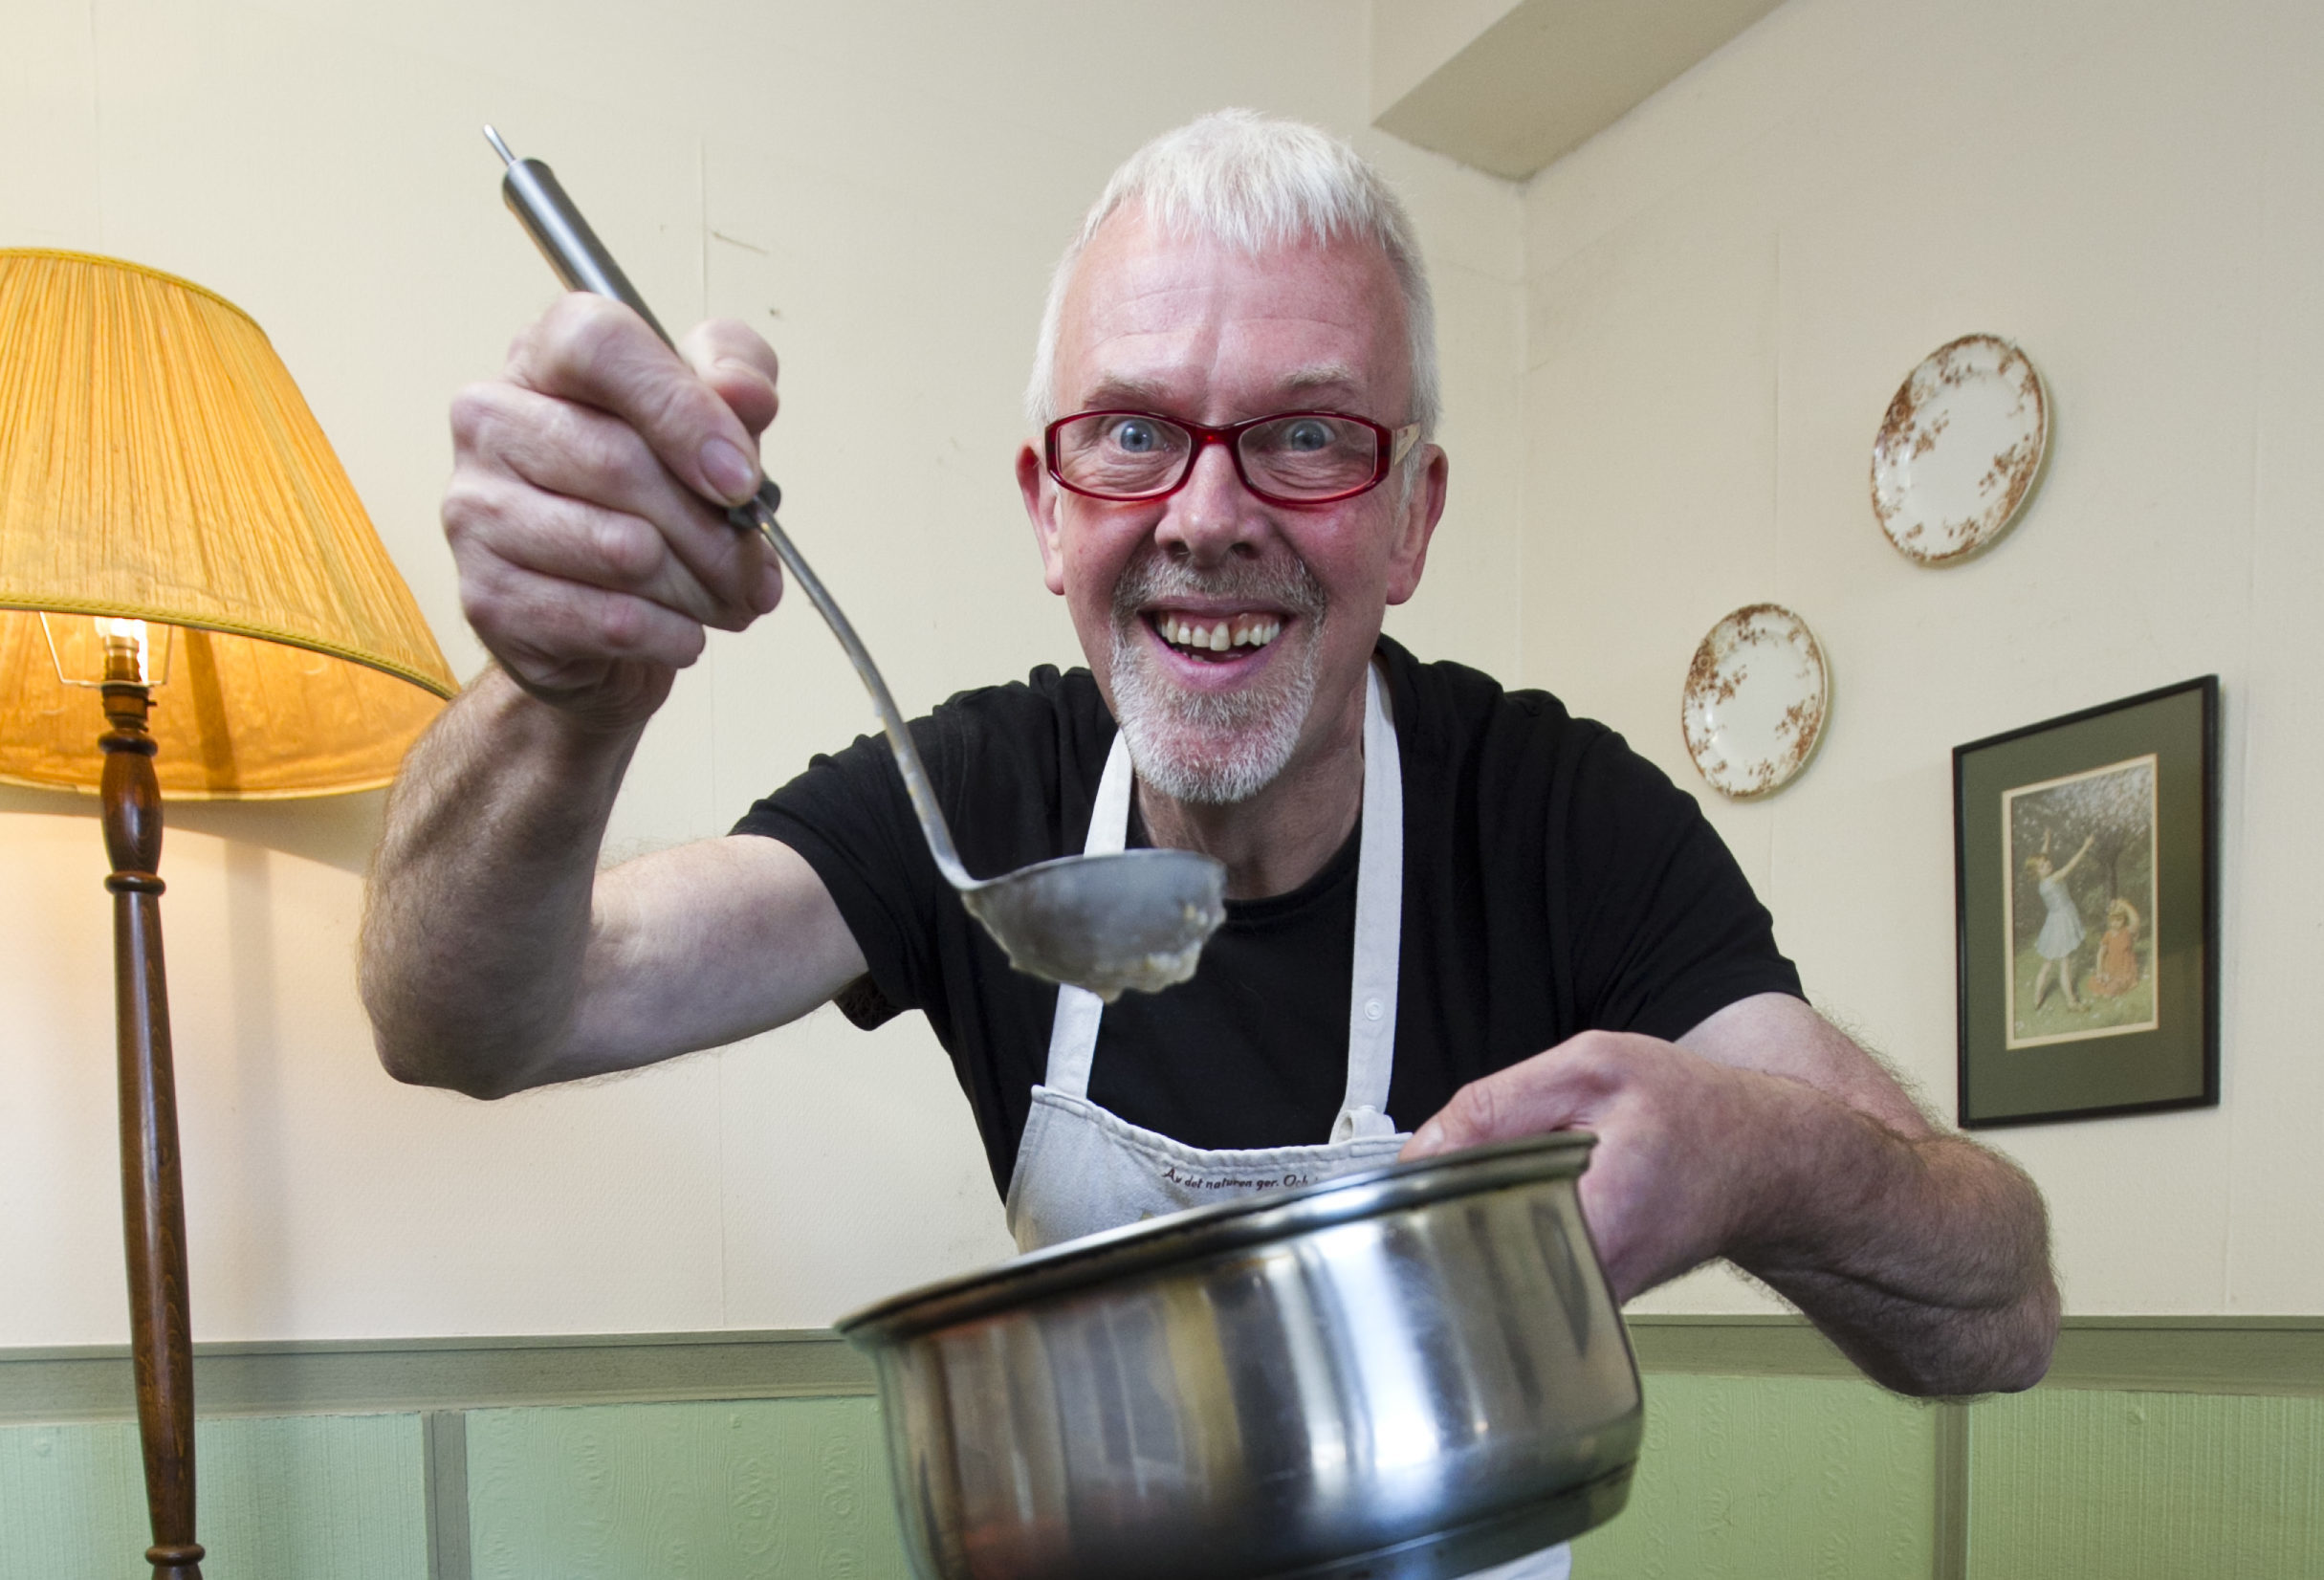 Former champion, Neal Robertson, is one of the 30 hopefuls wanting to win the 25th World Porridge Making Championships. (Andrew Cawley)